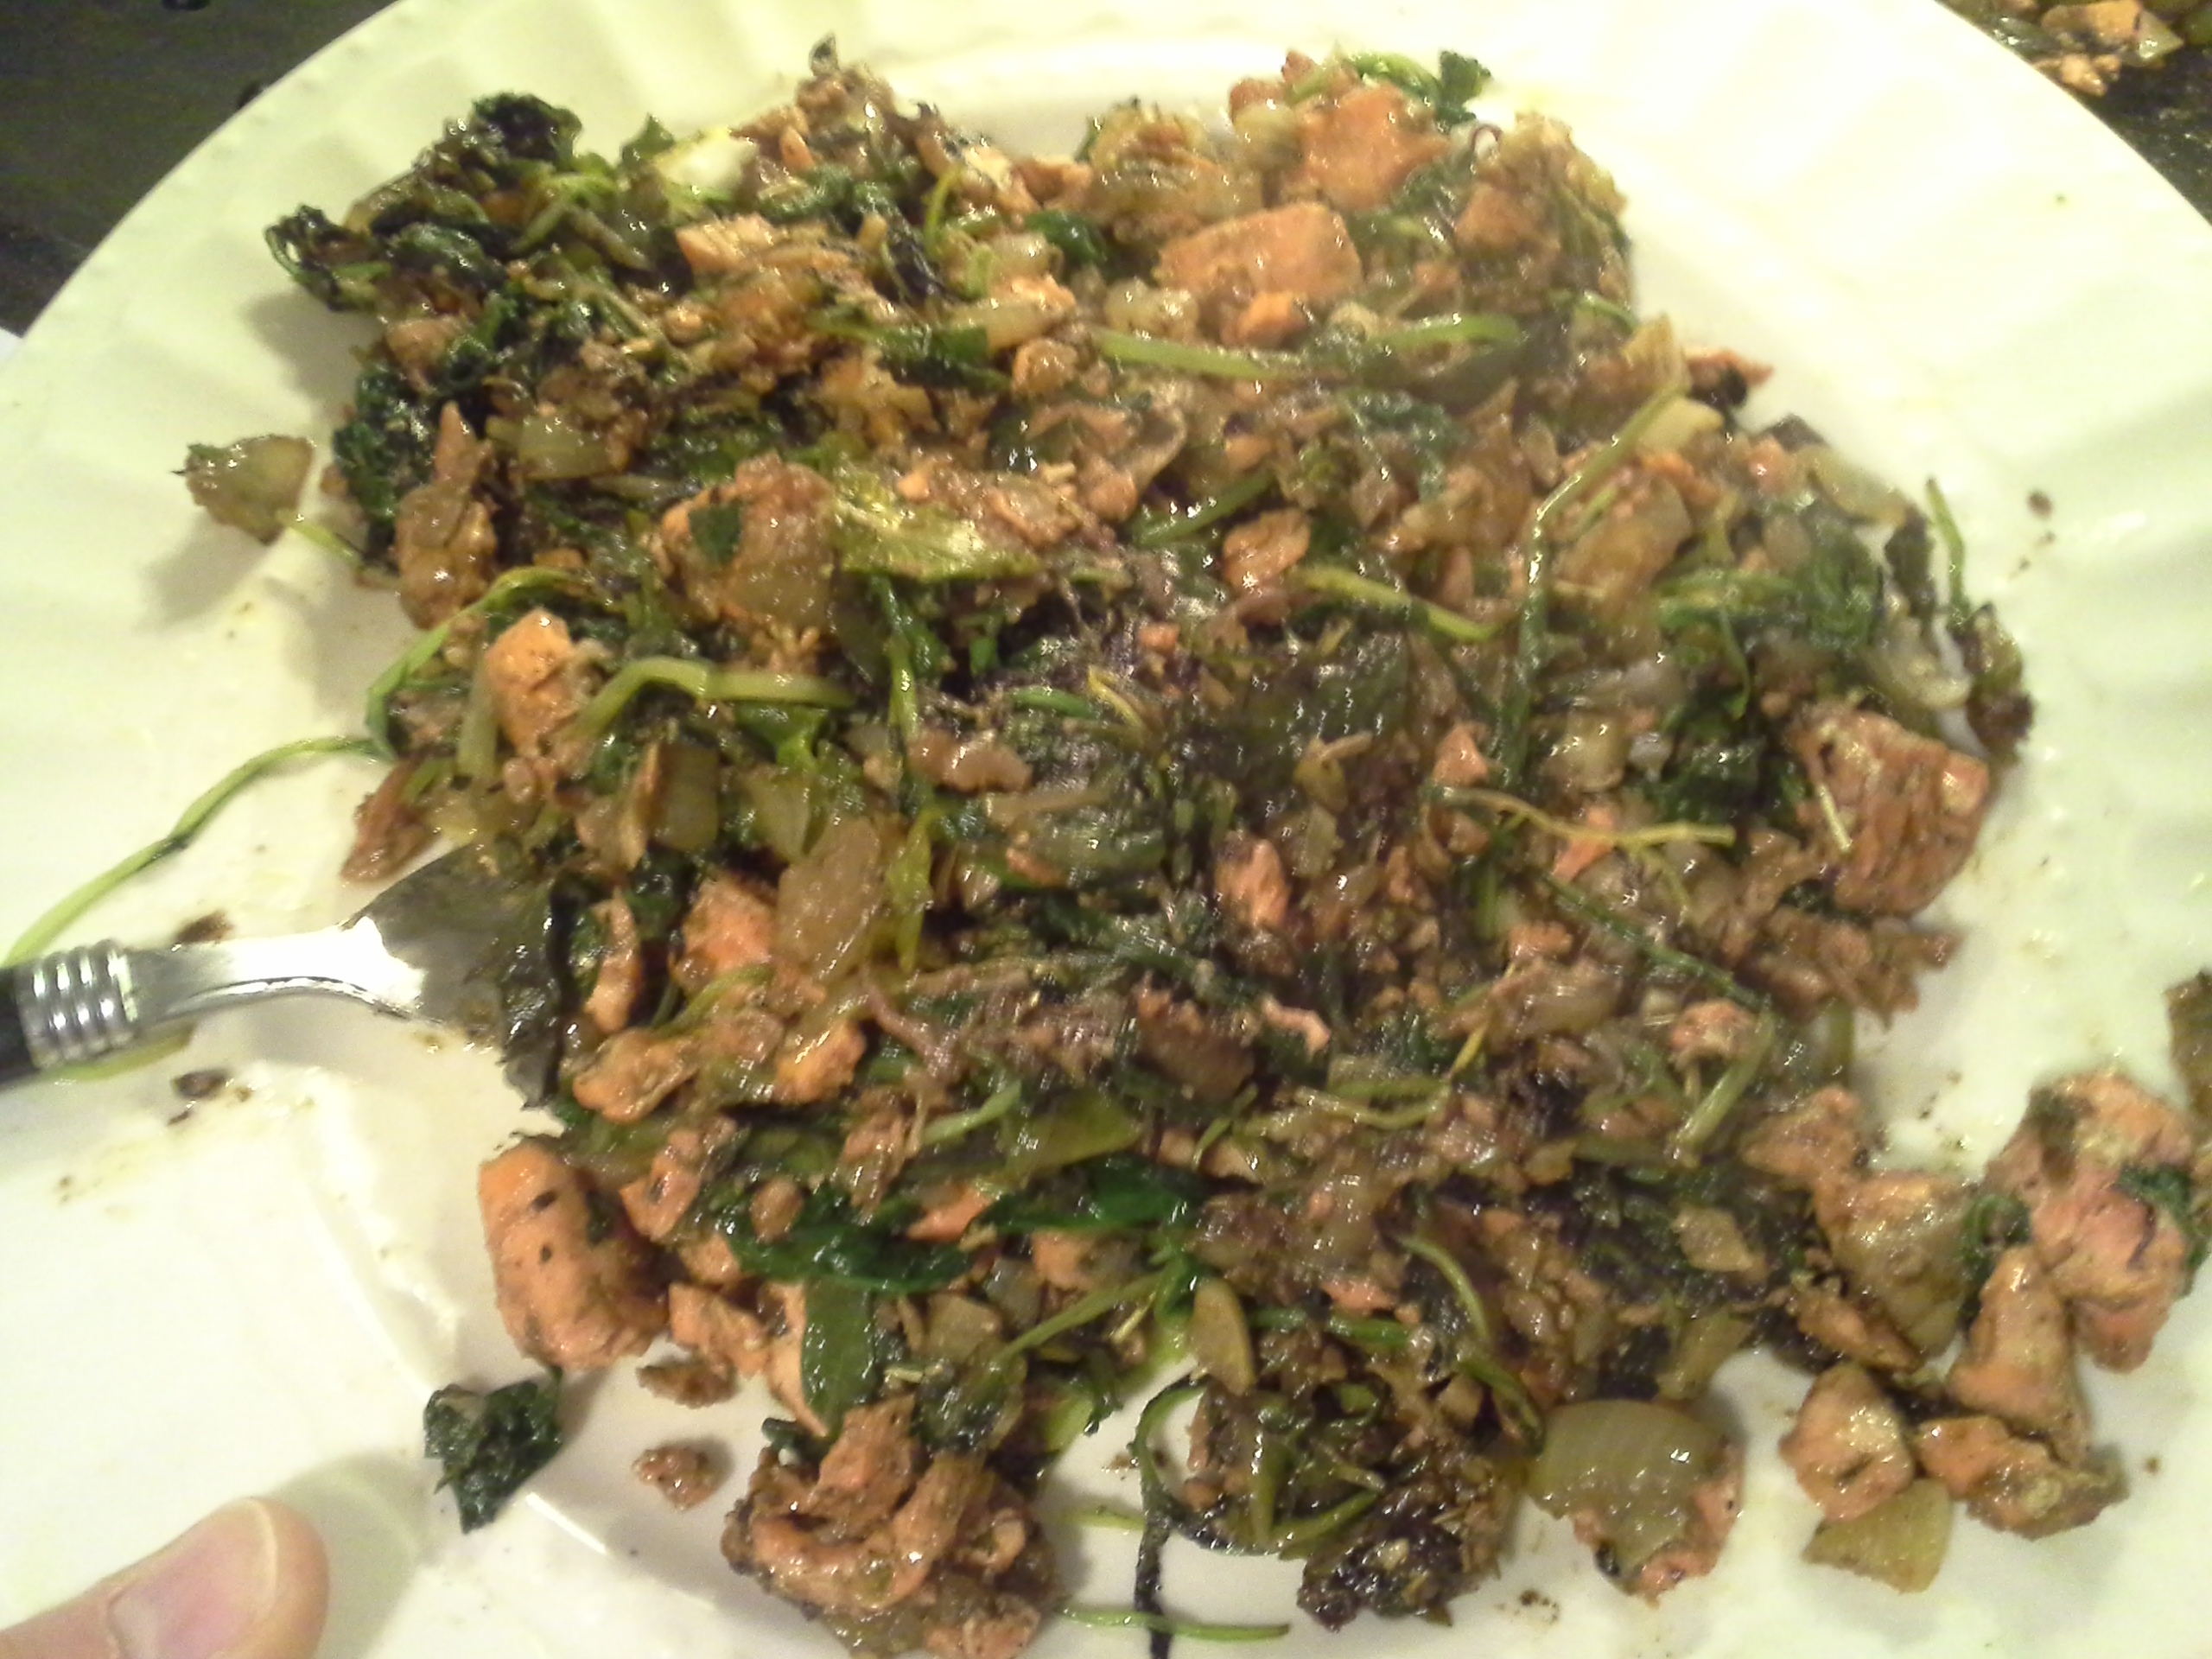 Breakfast: 11:15 a.m. | 8 oz. salmon, greens mix, 1/2 sweet onion, 4 cloves garlic, 2 Tbsp. coconut oil, herbs & spices